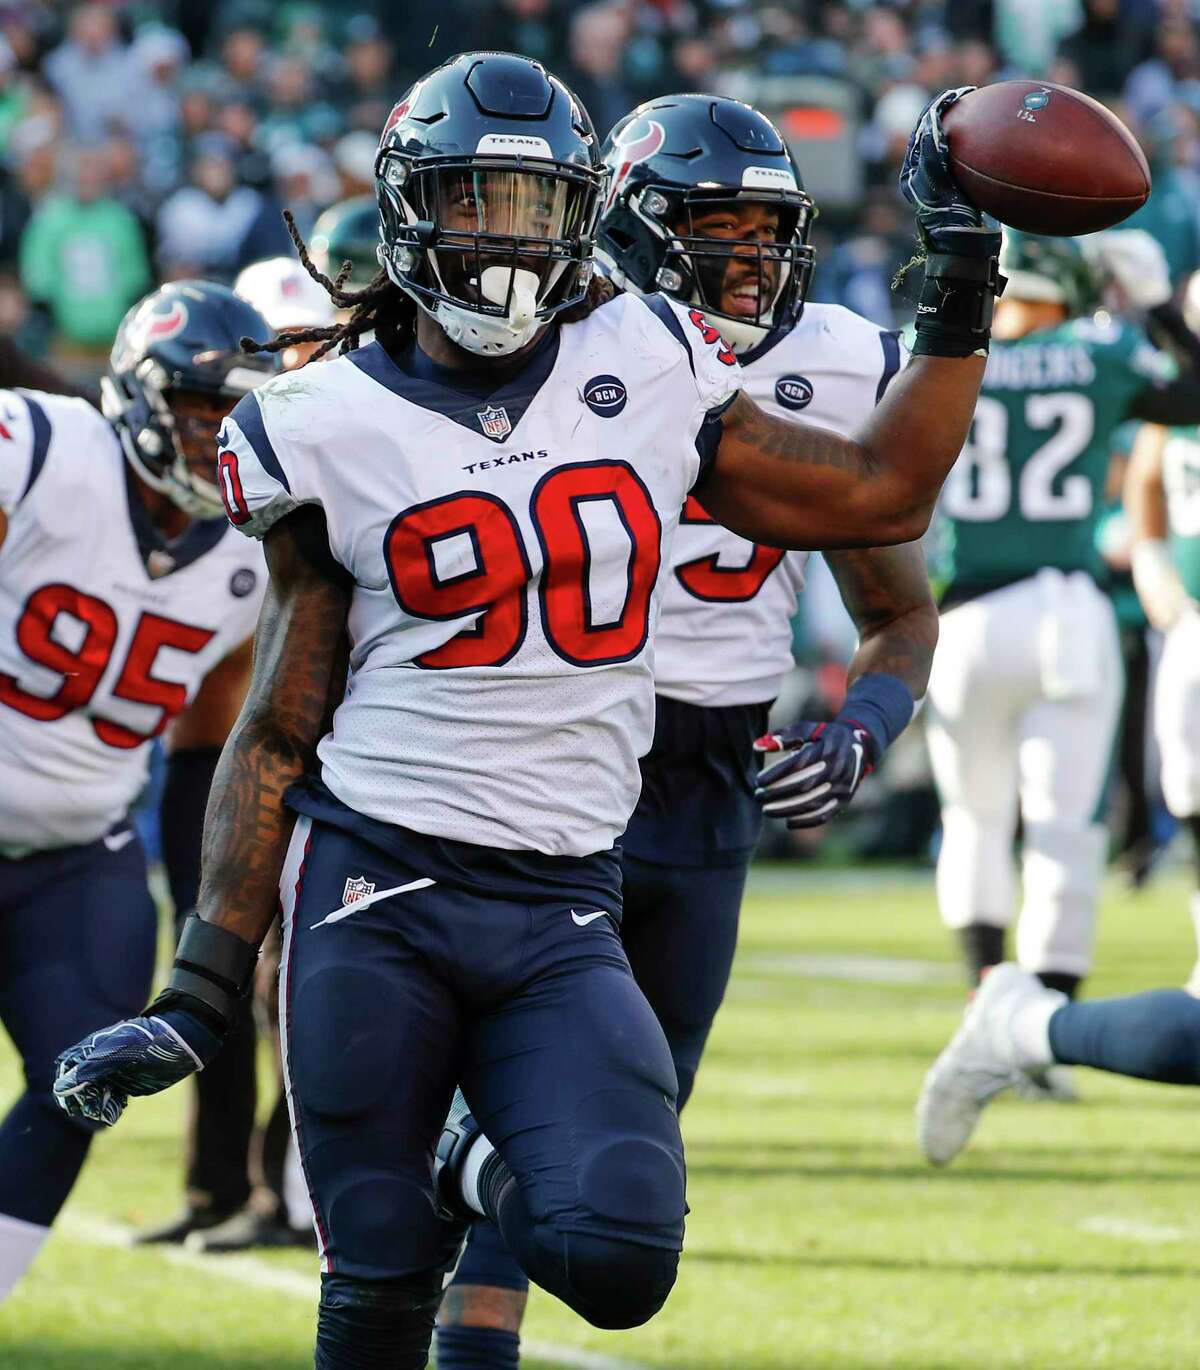 Houston Texans outside linebacker Jadeveon Clowney (90) celebrates his fumble recovery after sacking Philadelphia Eagles quarterback Nick Foles during the first half of an NFL football game at Lincoln Financial Field on Sunday, Dec. 23, 2018, in Philadelphia.